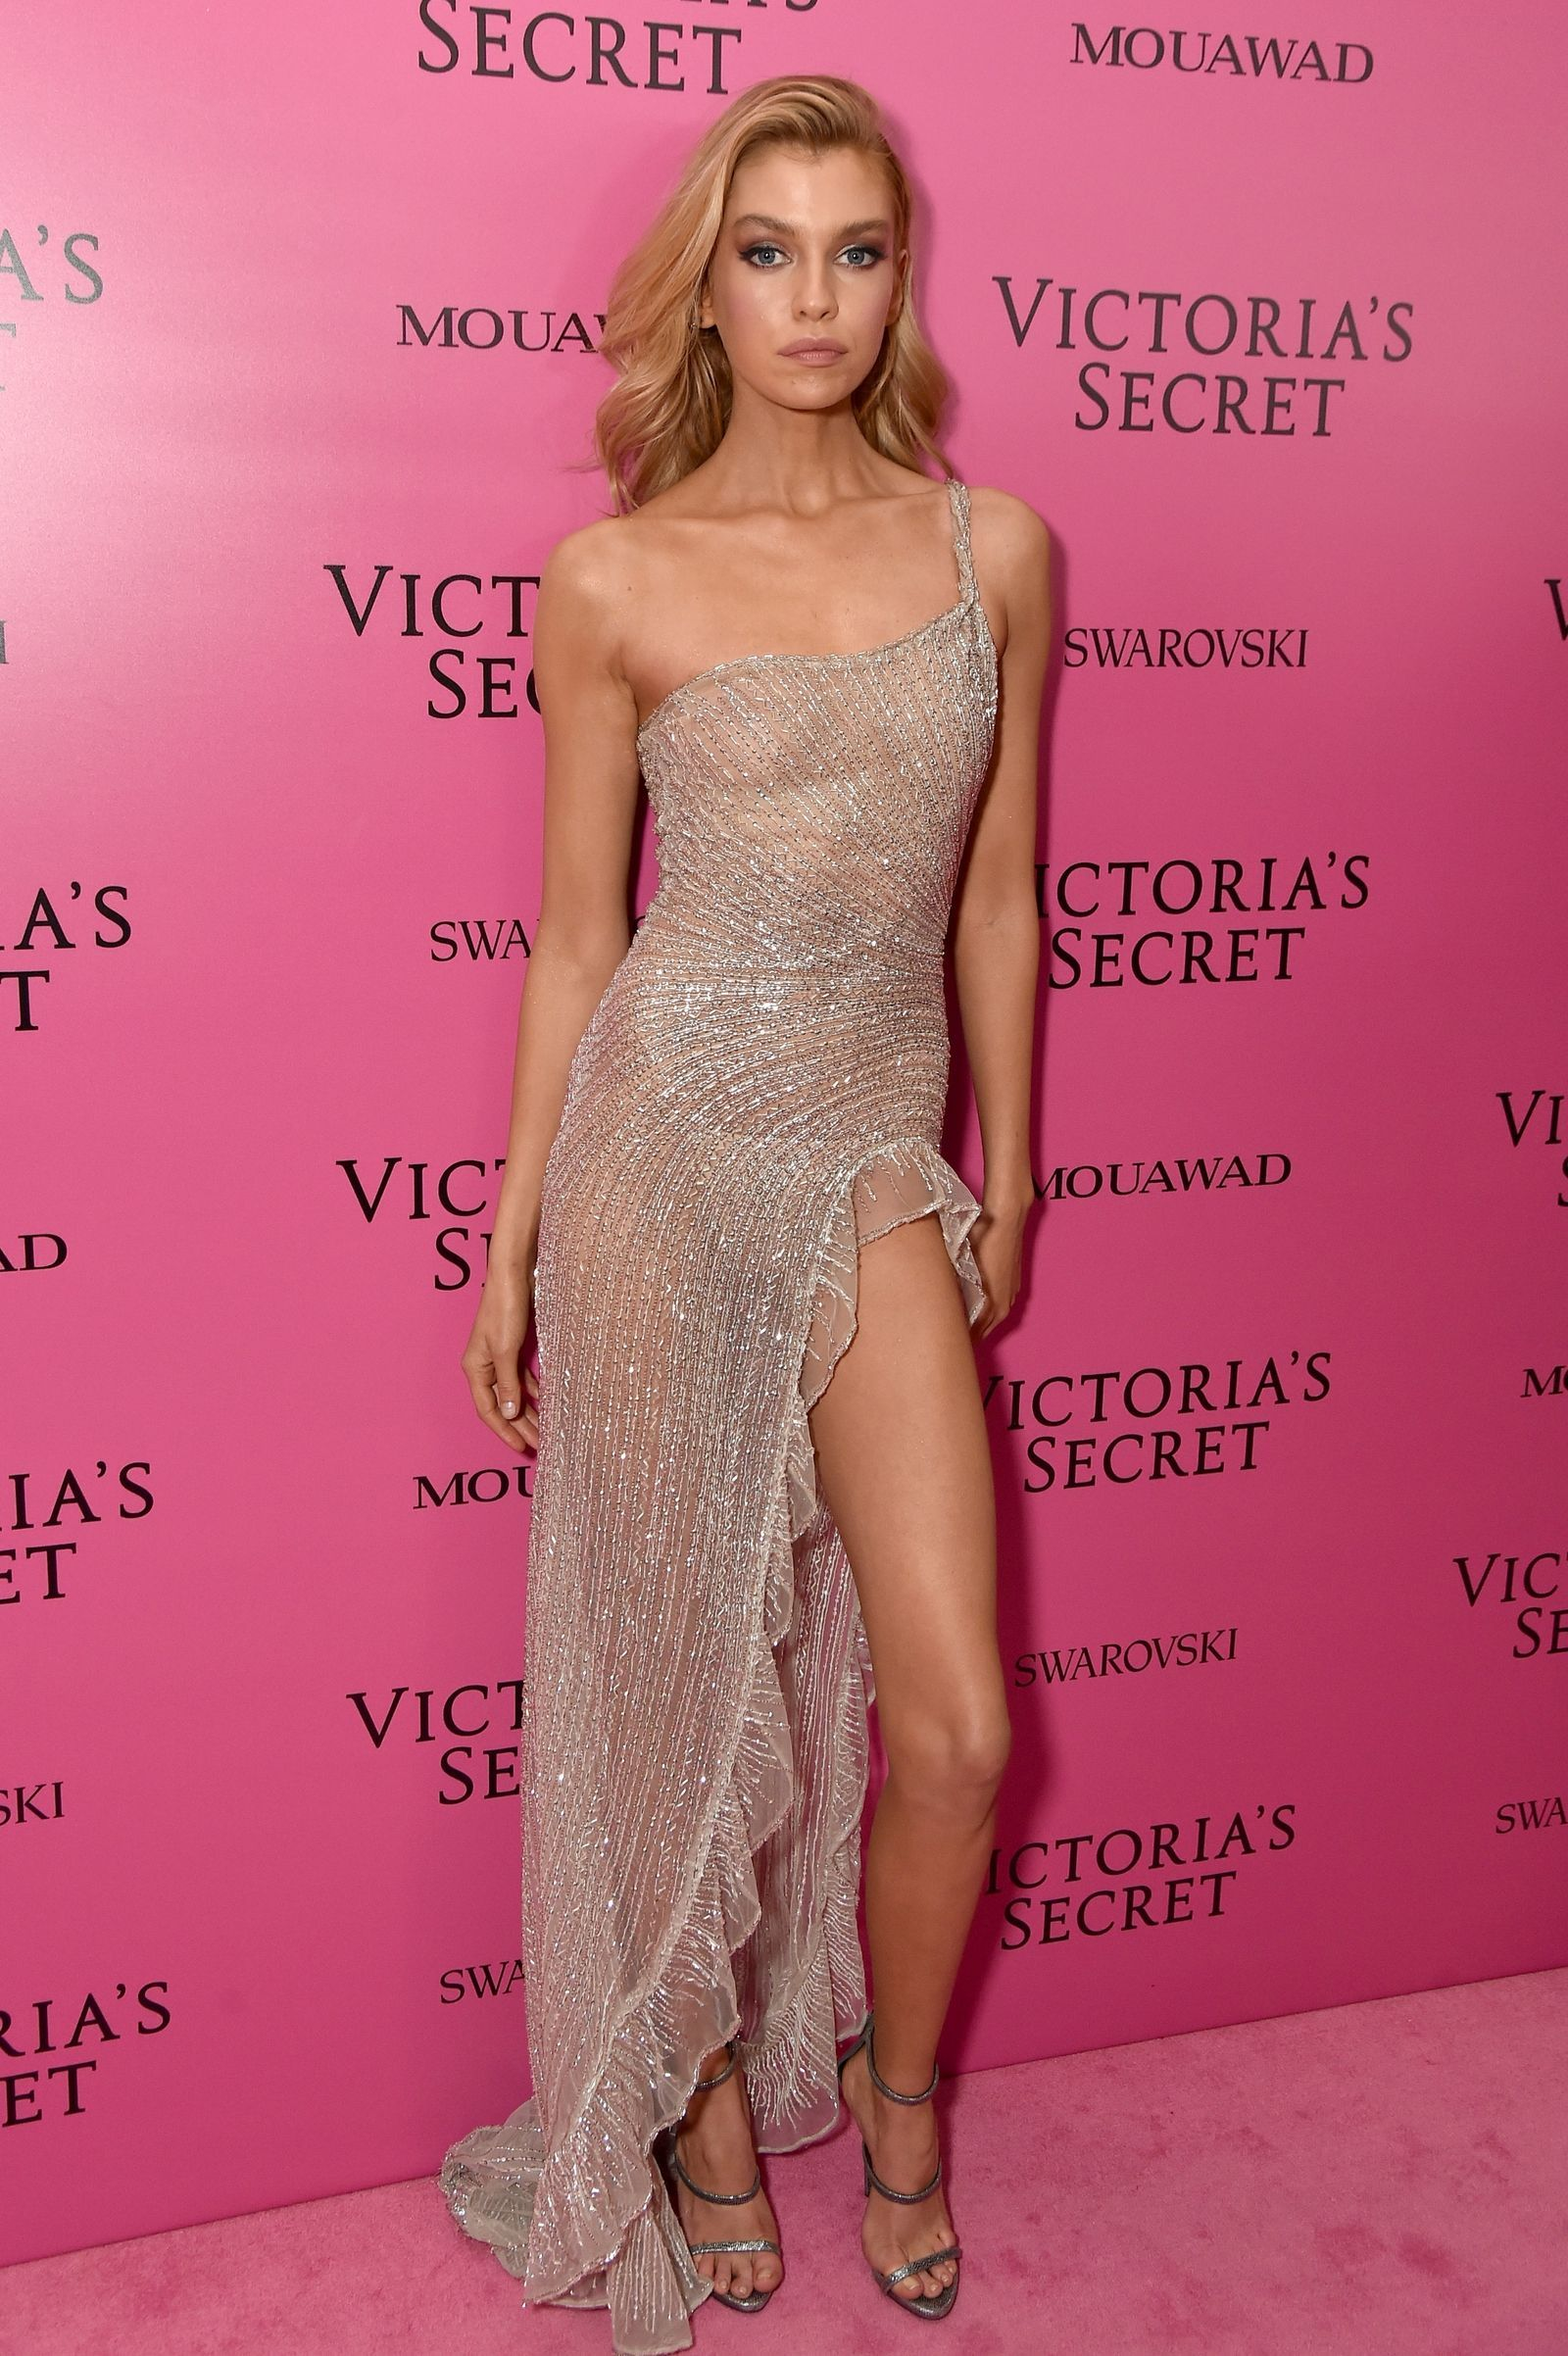 The sexiest dresses of 2017